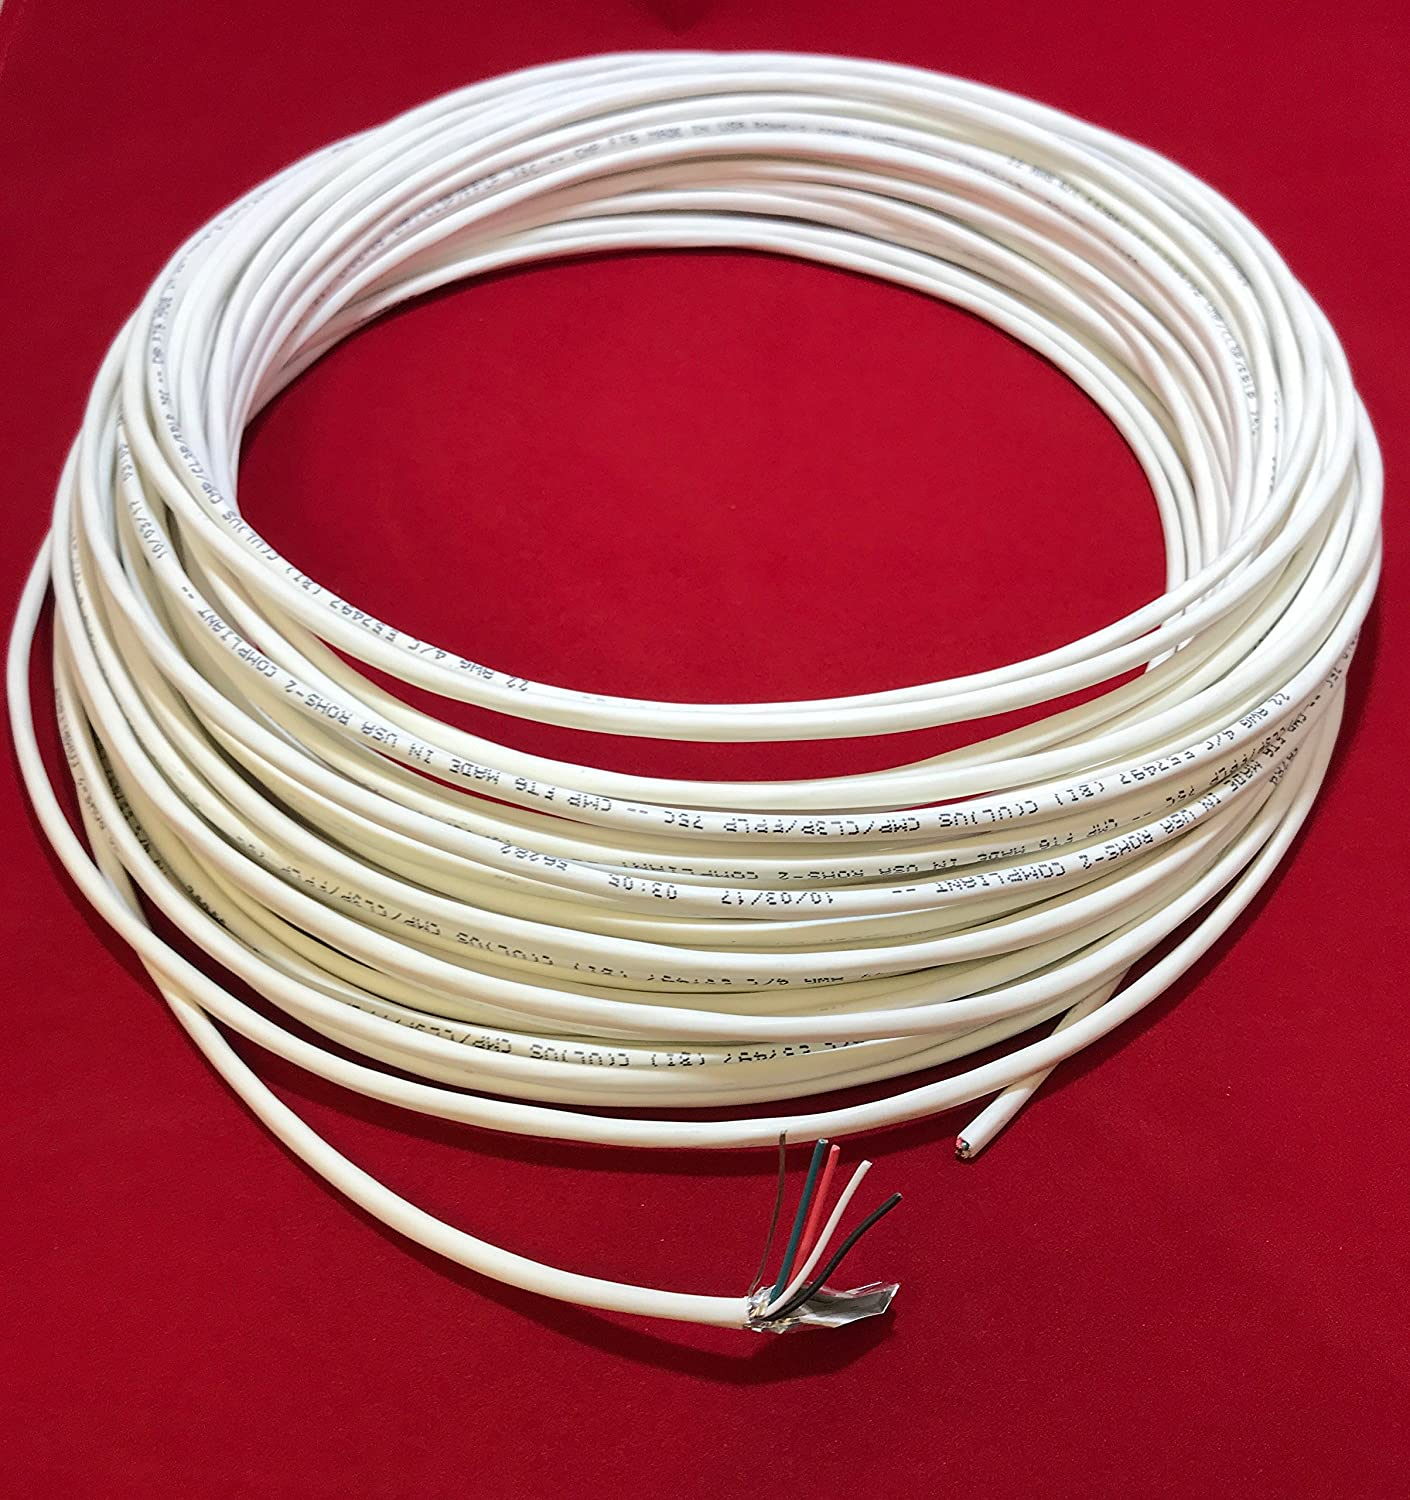 Custom Cable Connection 22 Awg 4 Conductor Stranded Shielded Plenum White Cl3p Jacket 100 Foot Roll In A Bag Also Referred To As The Return Wire That Completes Circuit